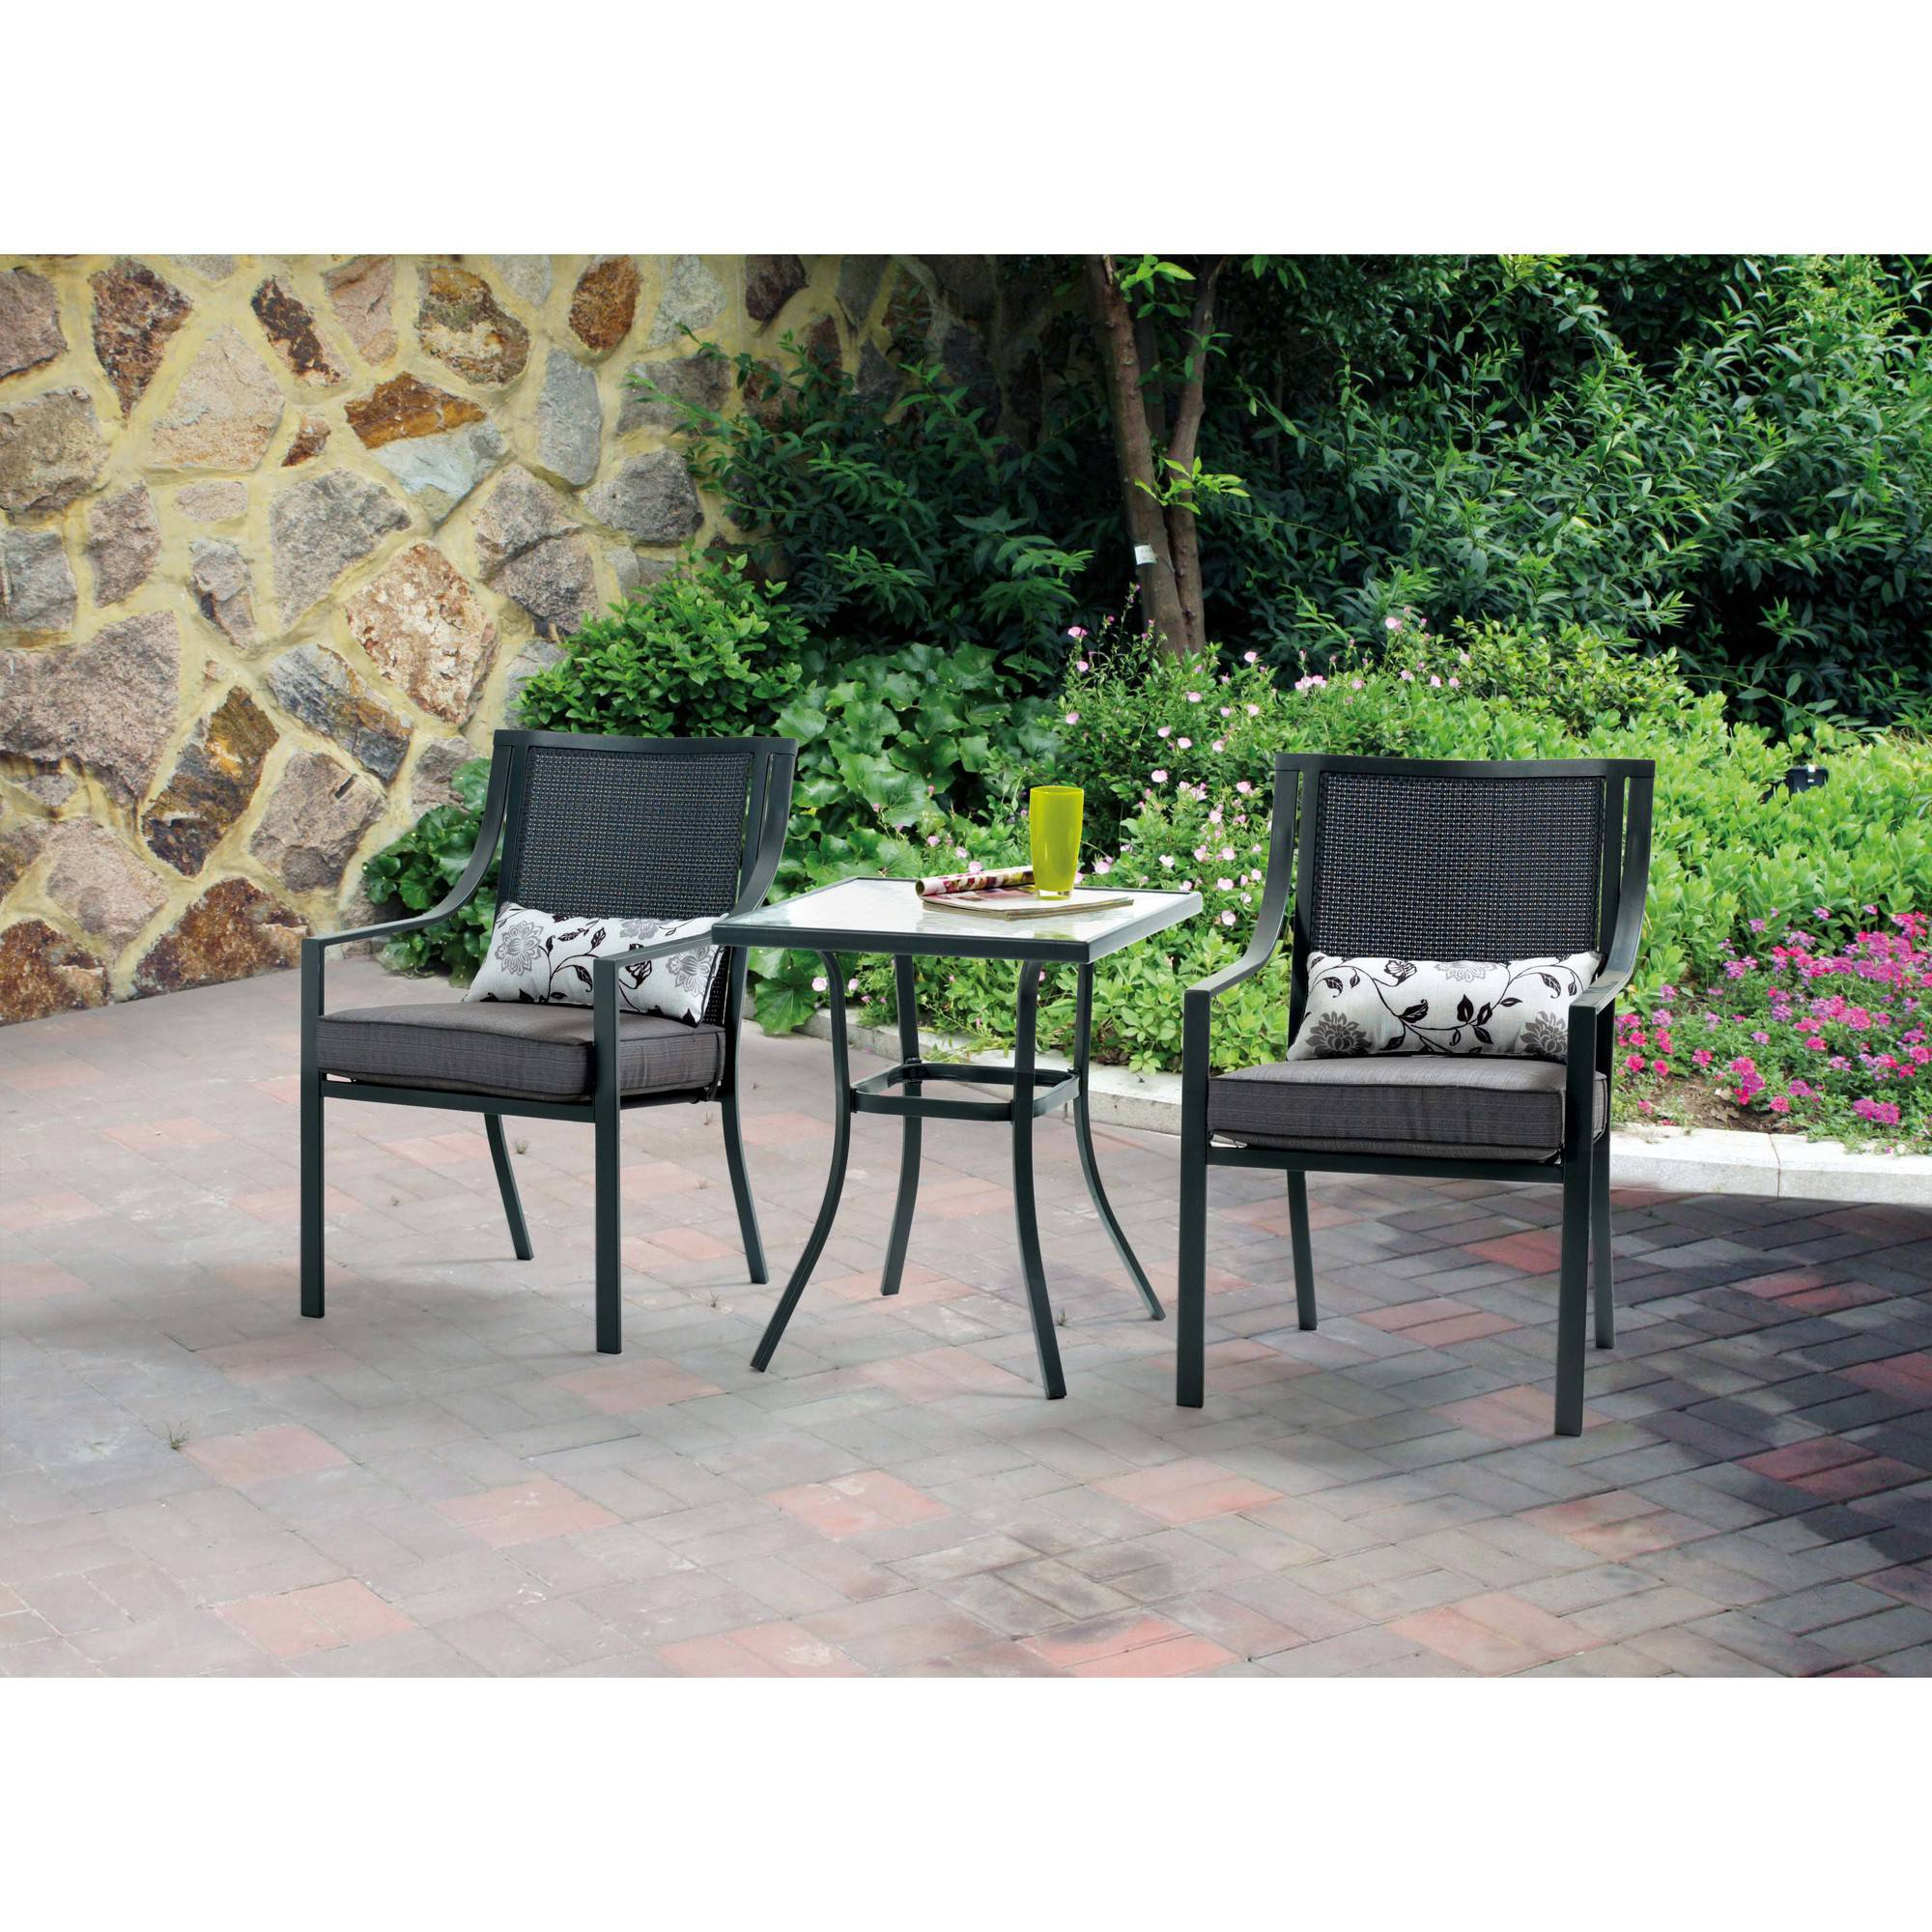 Mainstays Alexandra Square 3-Piece Outdoor Bistro Set Seats 2 - Walmart.com  sc 1 st  Walmart.com & Mainstays Alexandra Square 3-Piece Outdoor Bistro Set Seats 2 ...